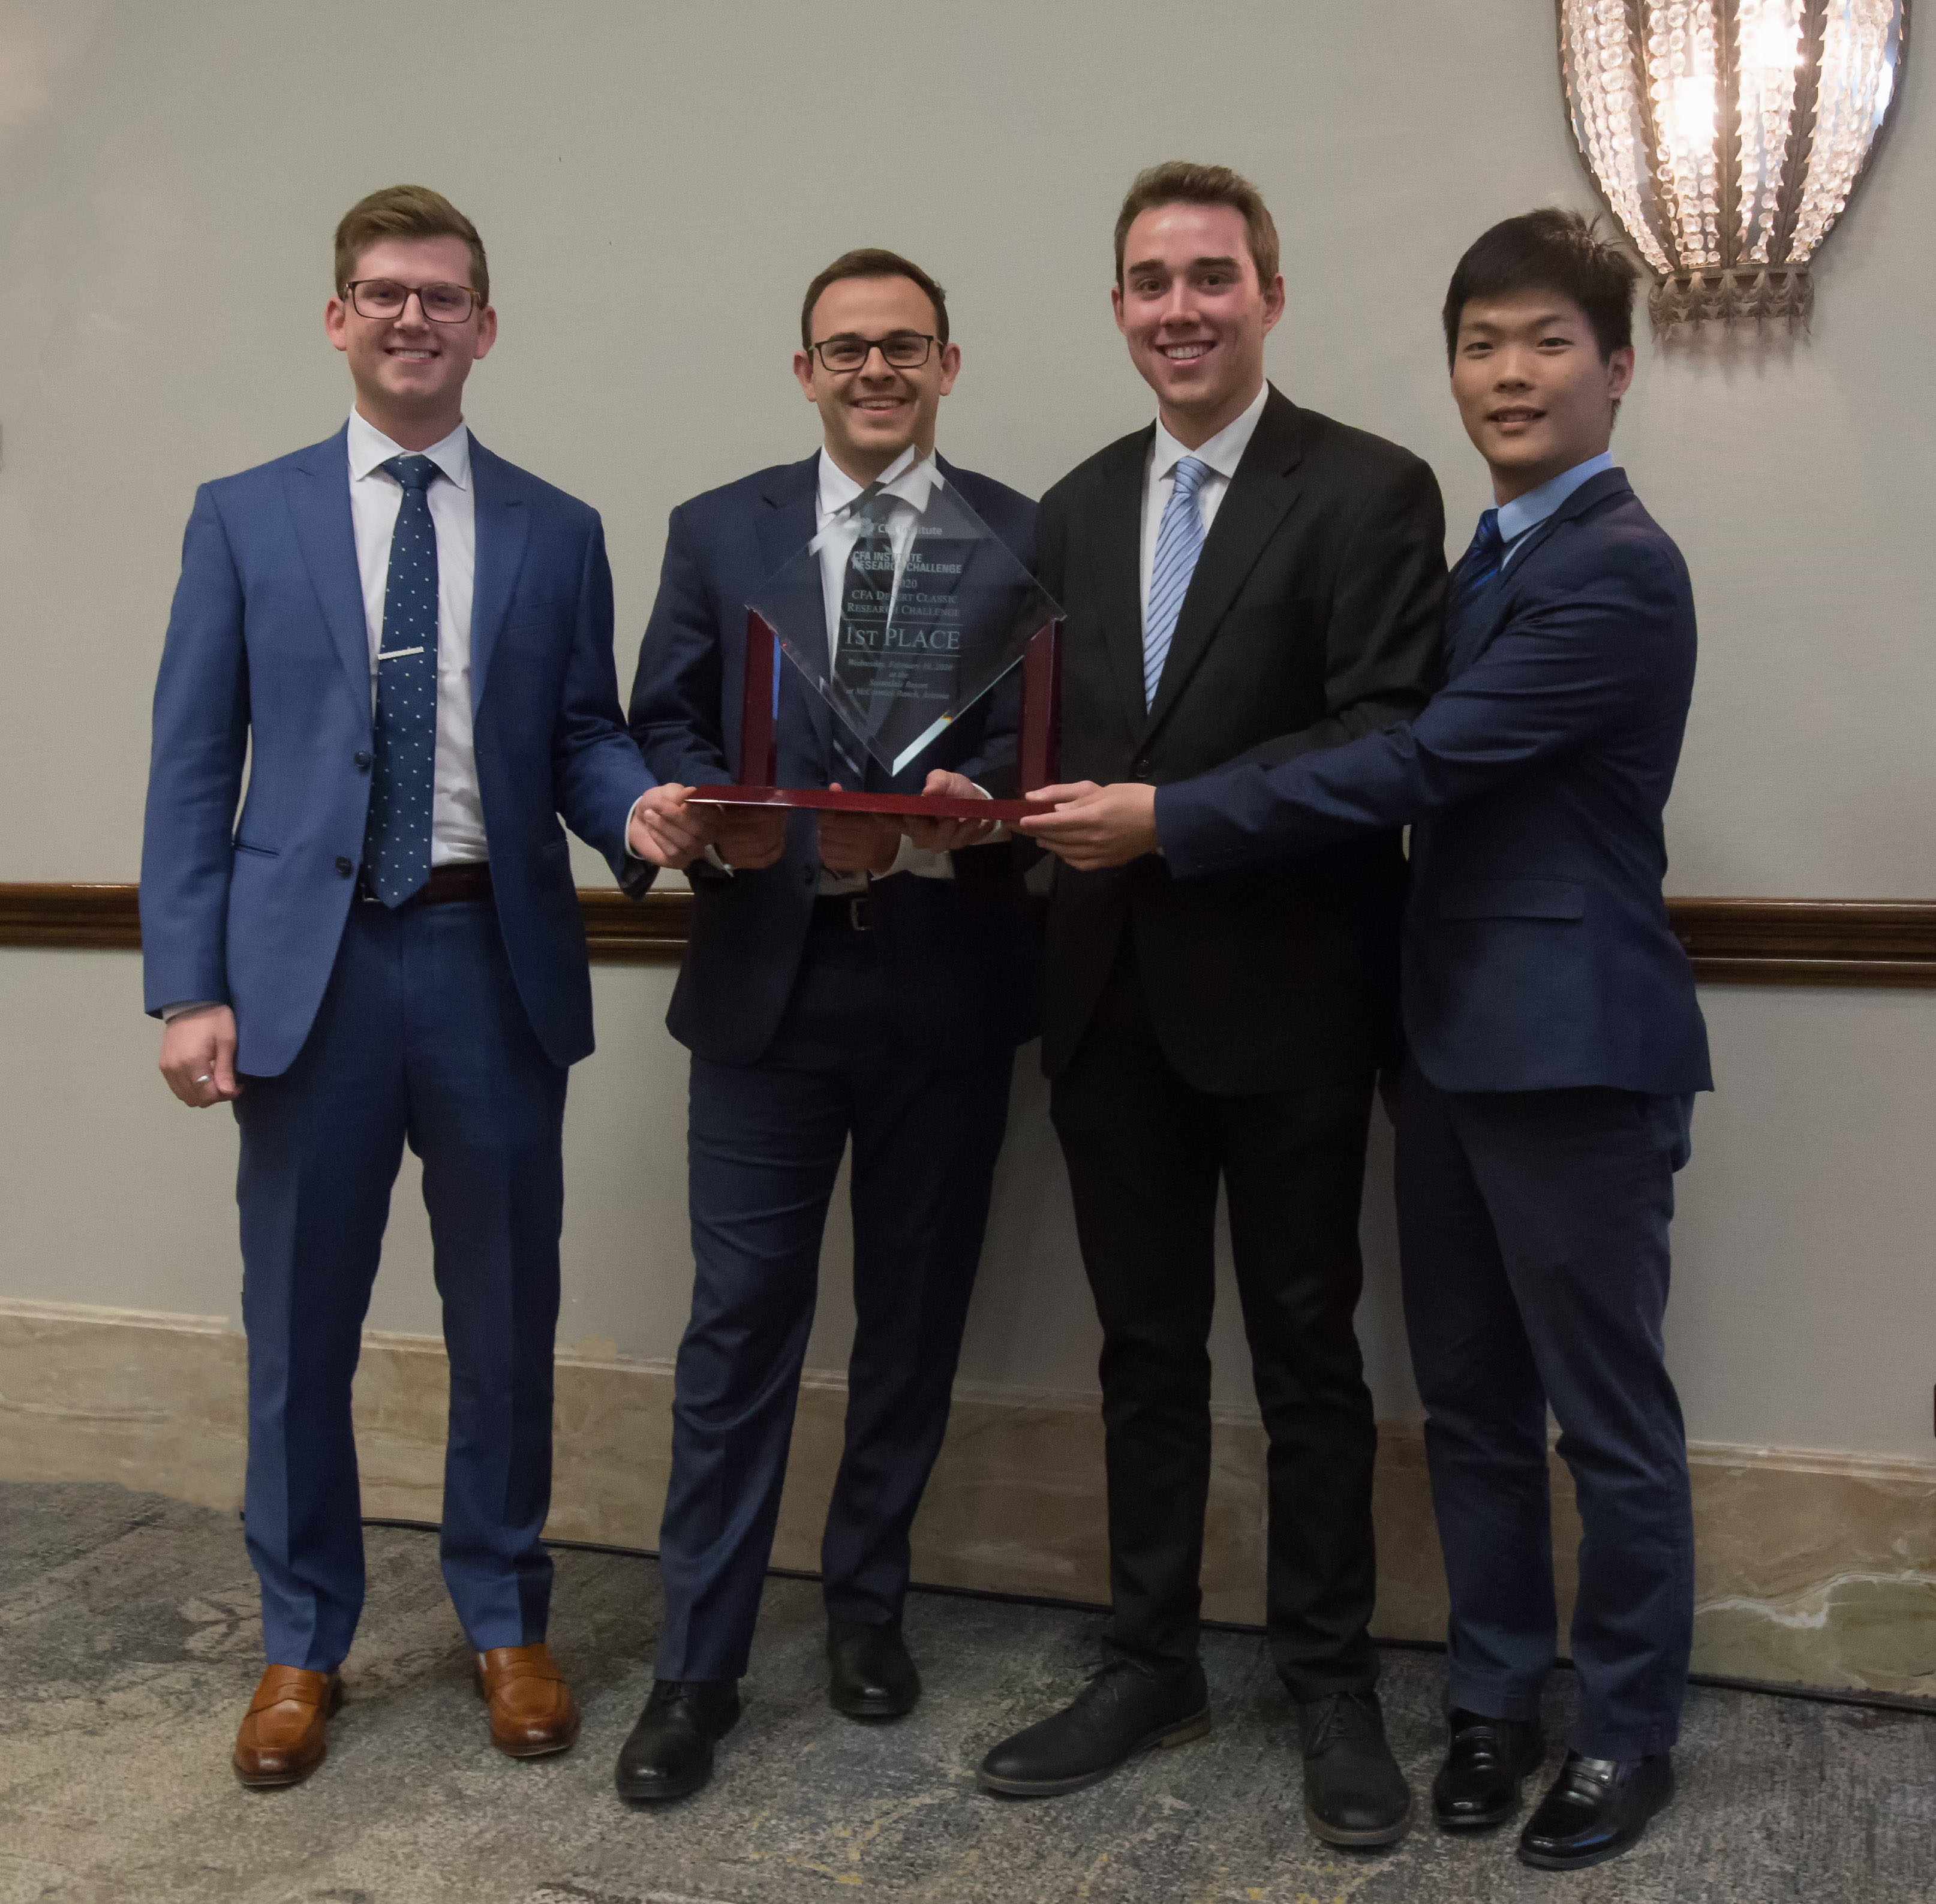 Finance students Payton Rudnick,Steven Feeney,Nick StankovenandJingsong Wu with their first place award